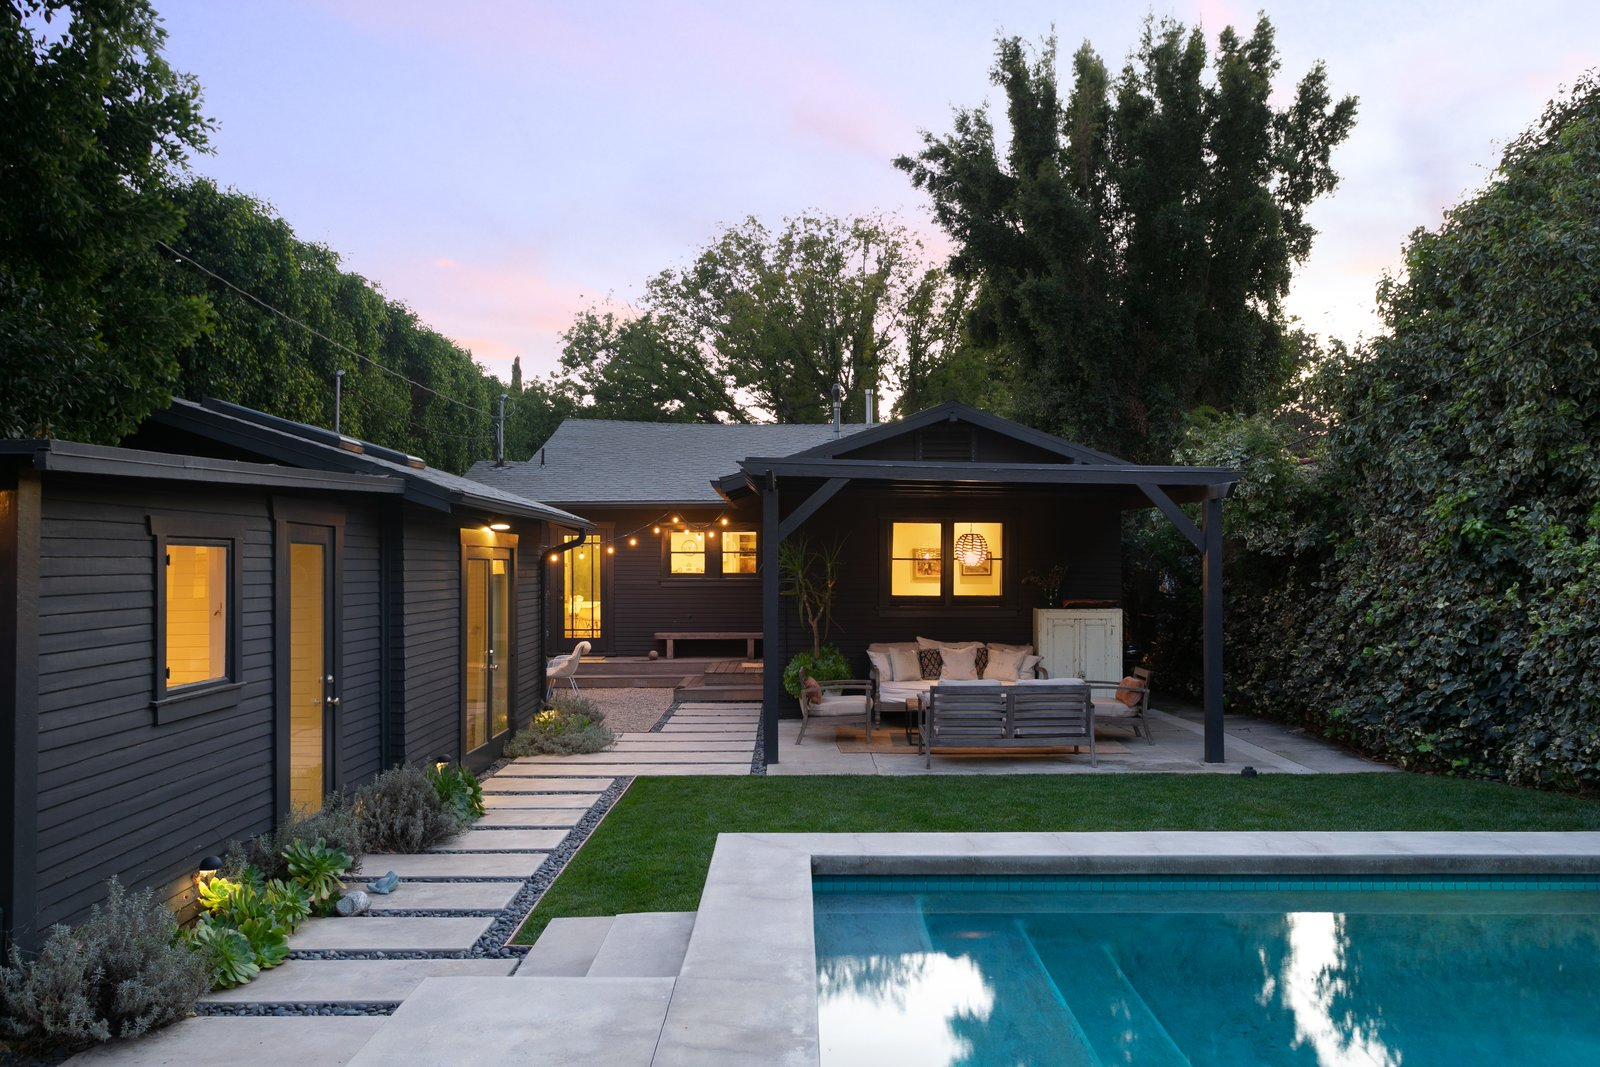 1920s Los Angels bungalow outdoor